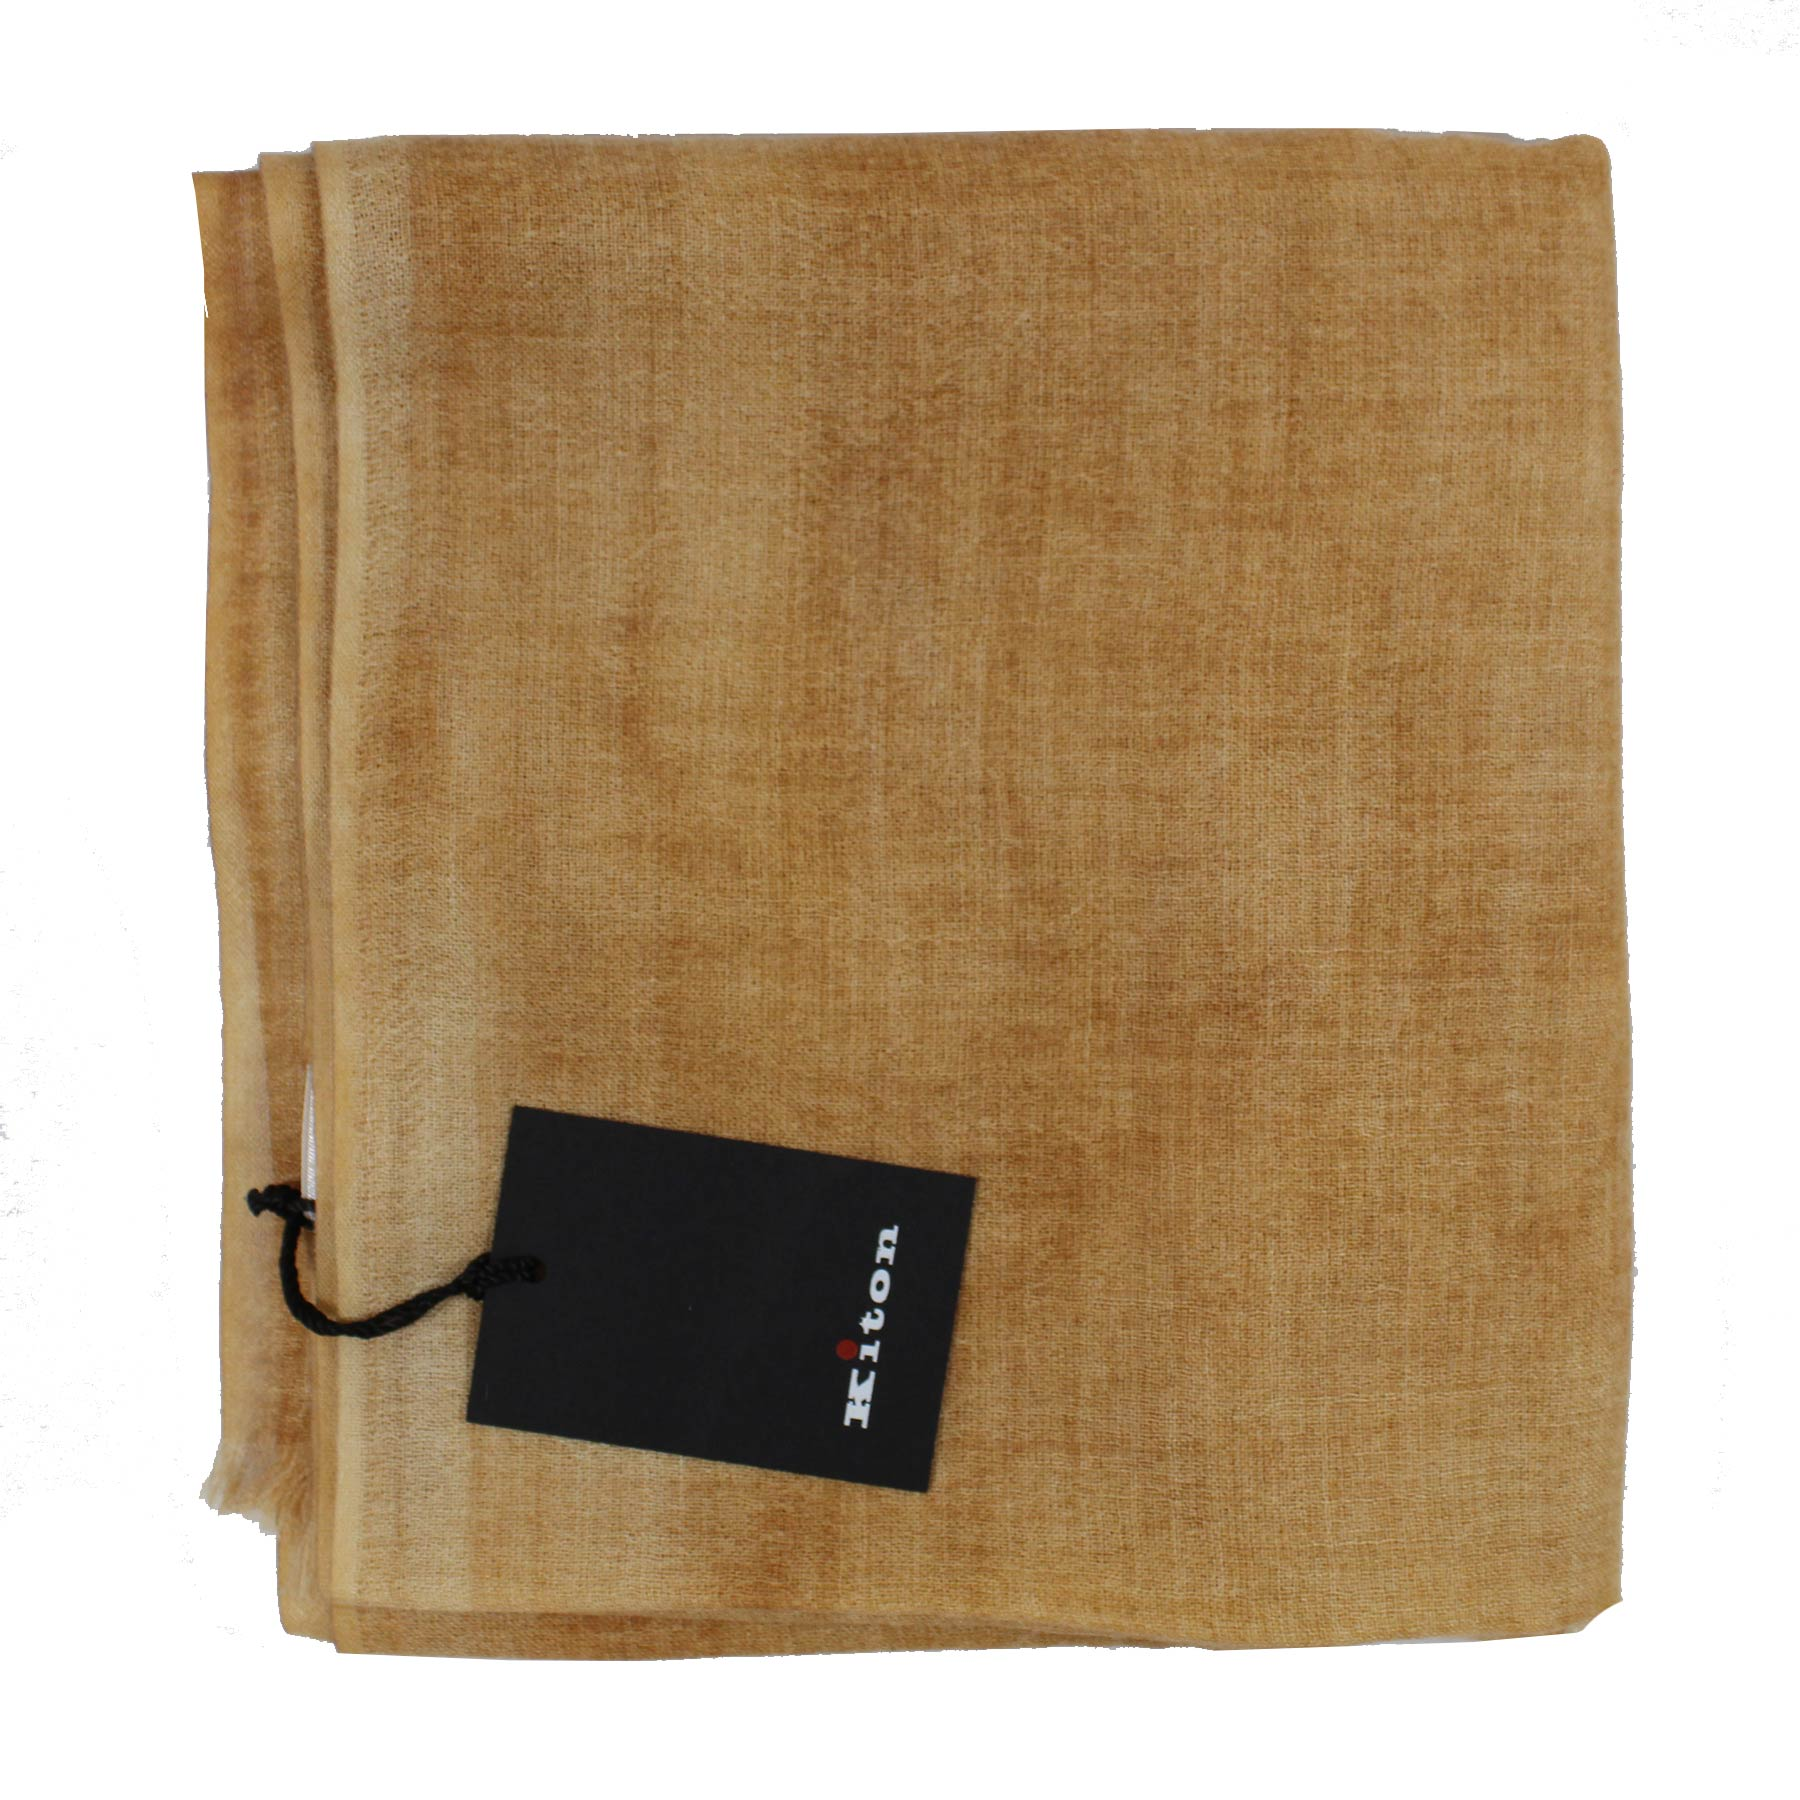 Kiton Scarf Beige Brown Design - Cashmere Silk Women Shawl